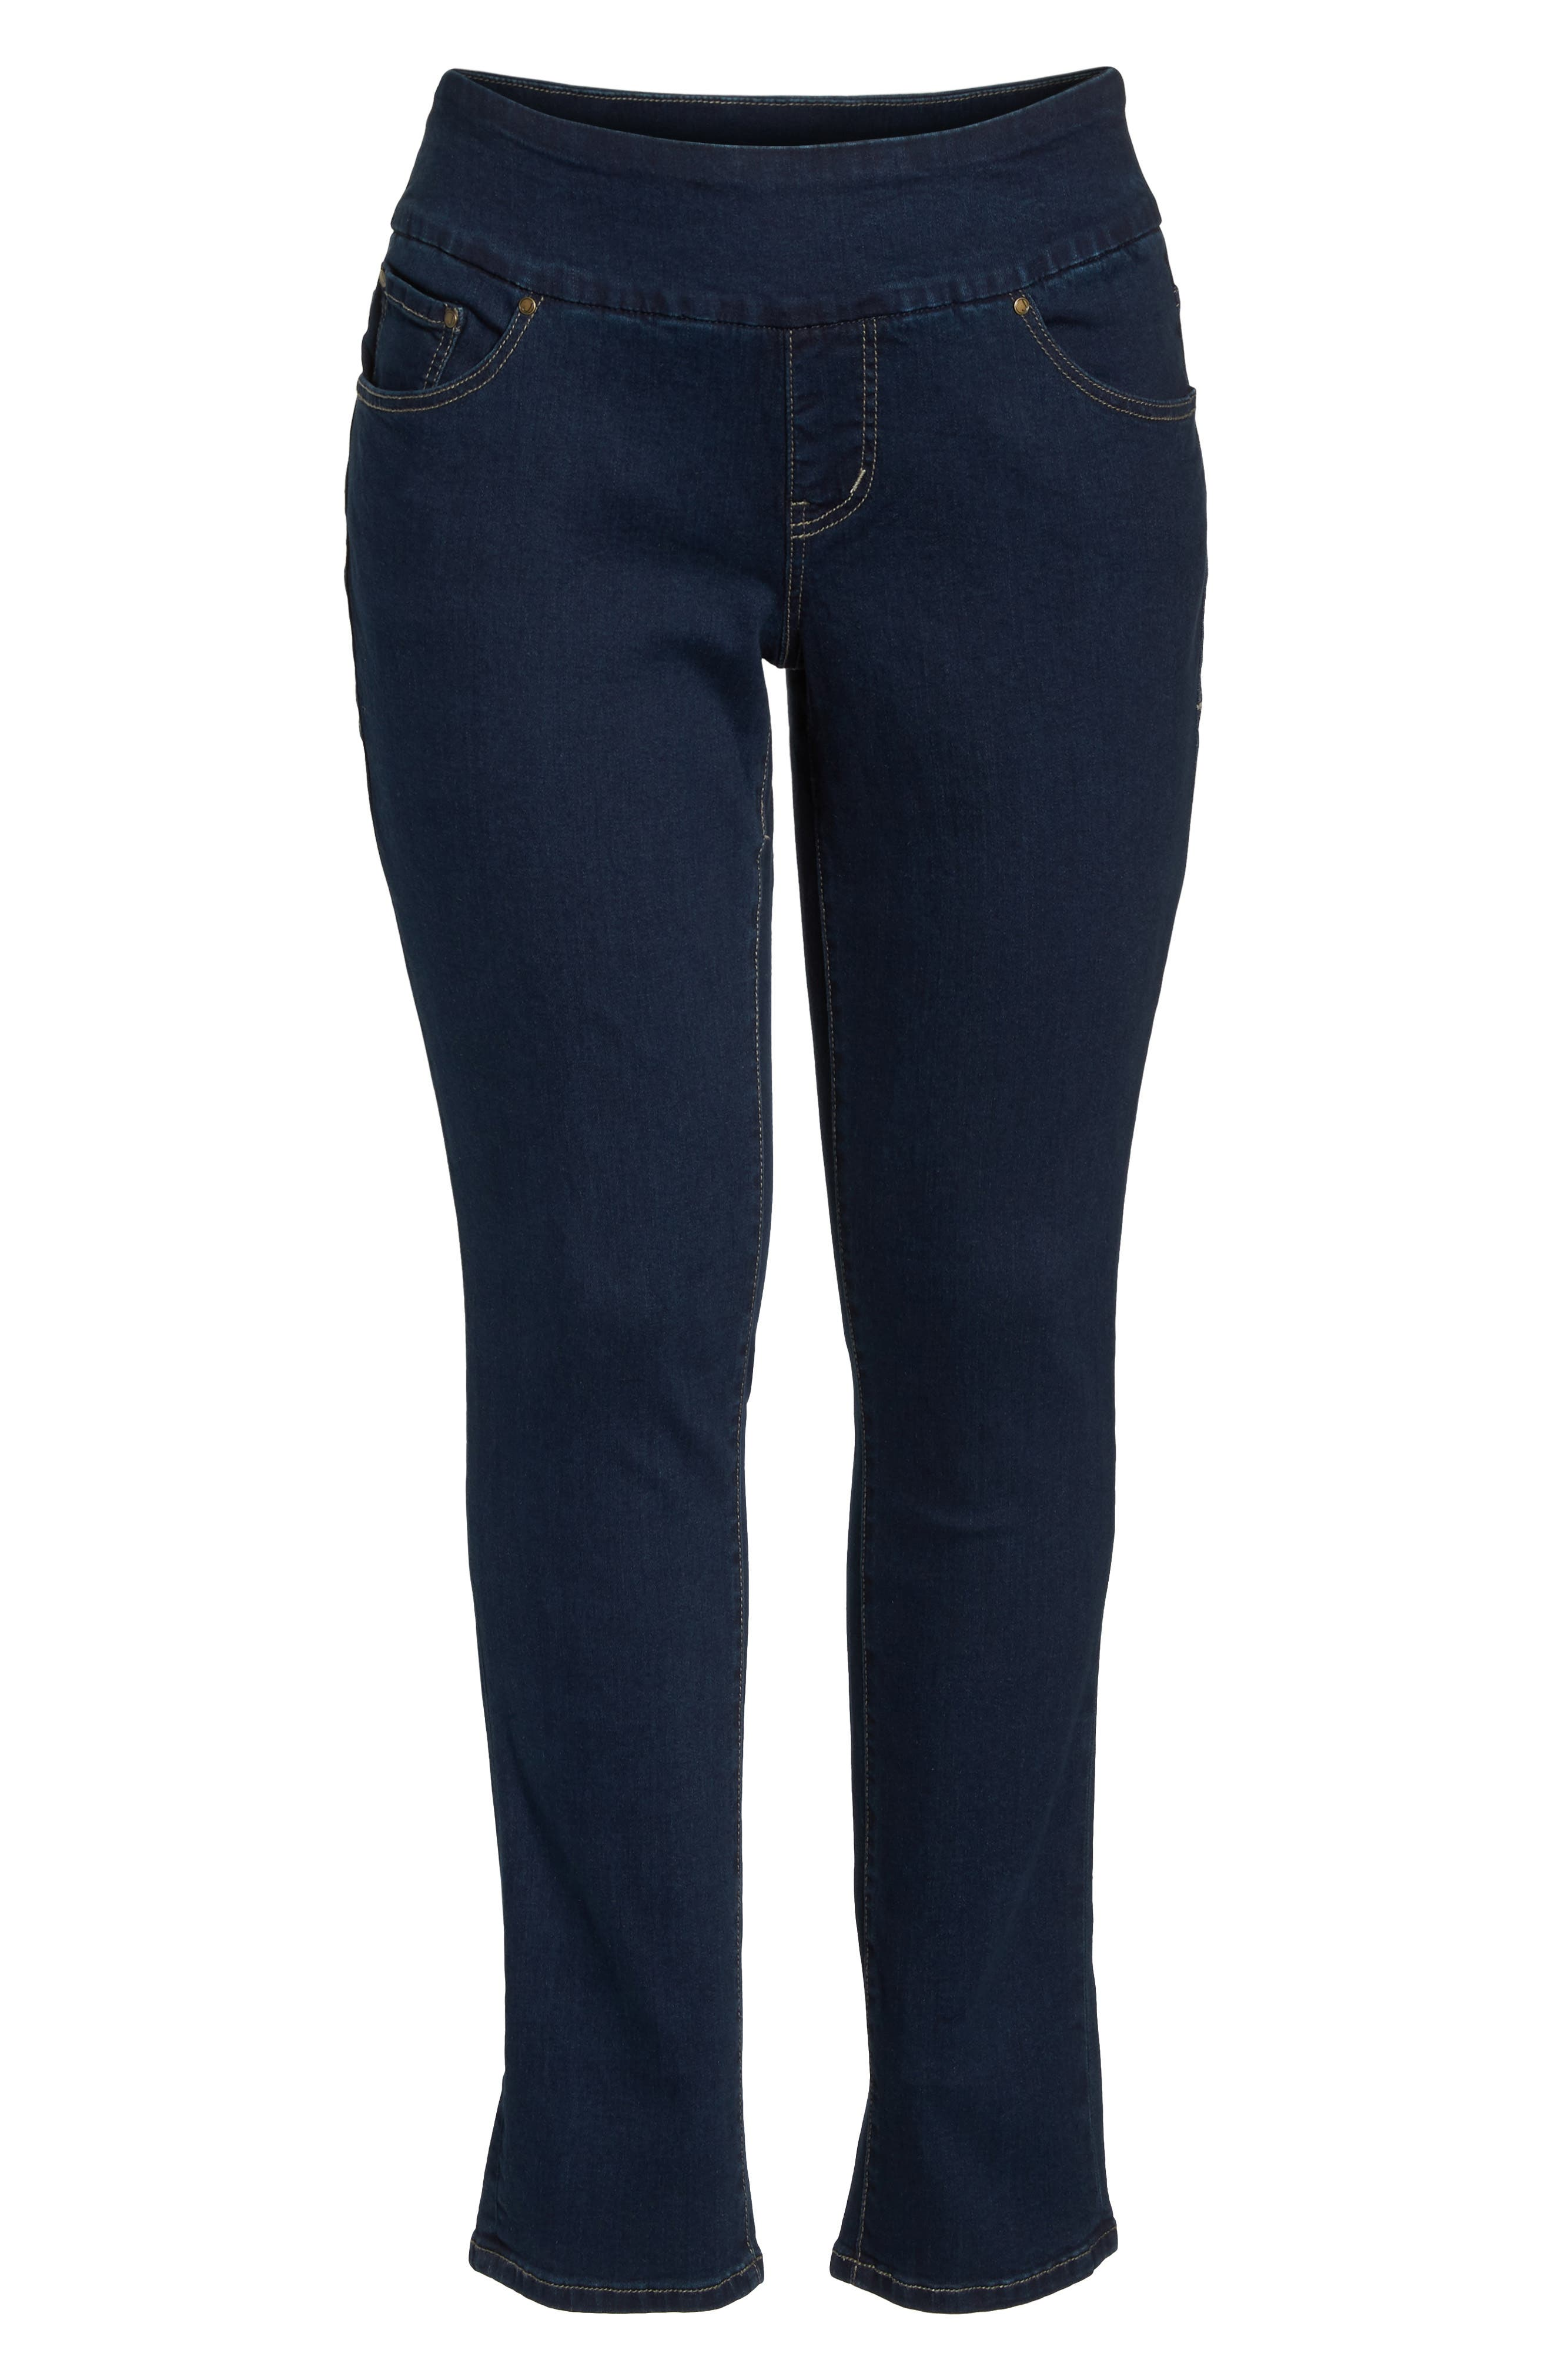 Paley Pull-On Bootcut Jeans,                             Alternate thumbnail 7, color,                             MED INDIGO